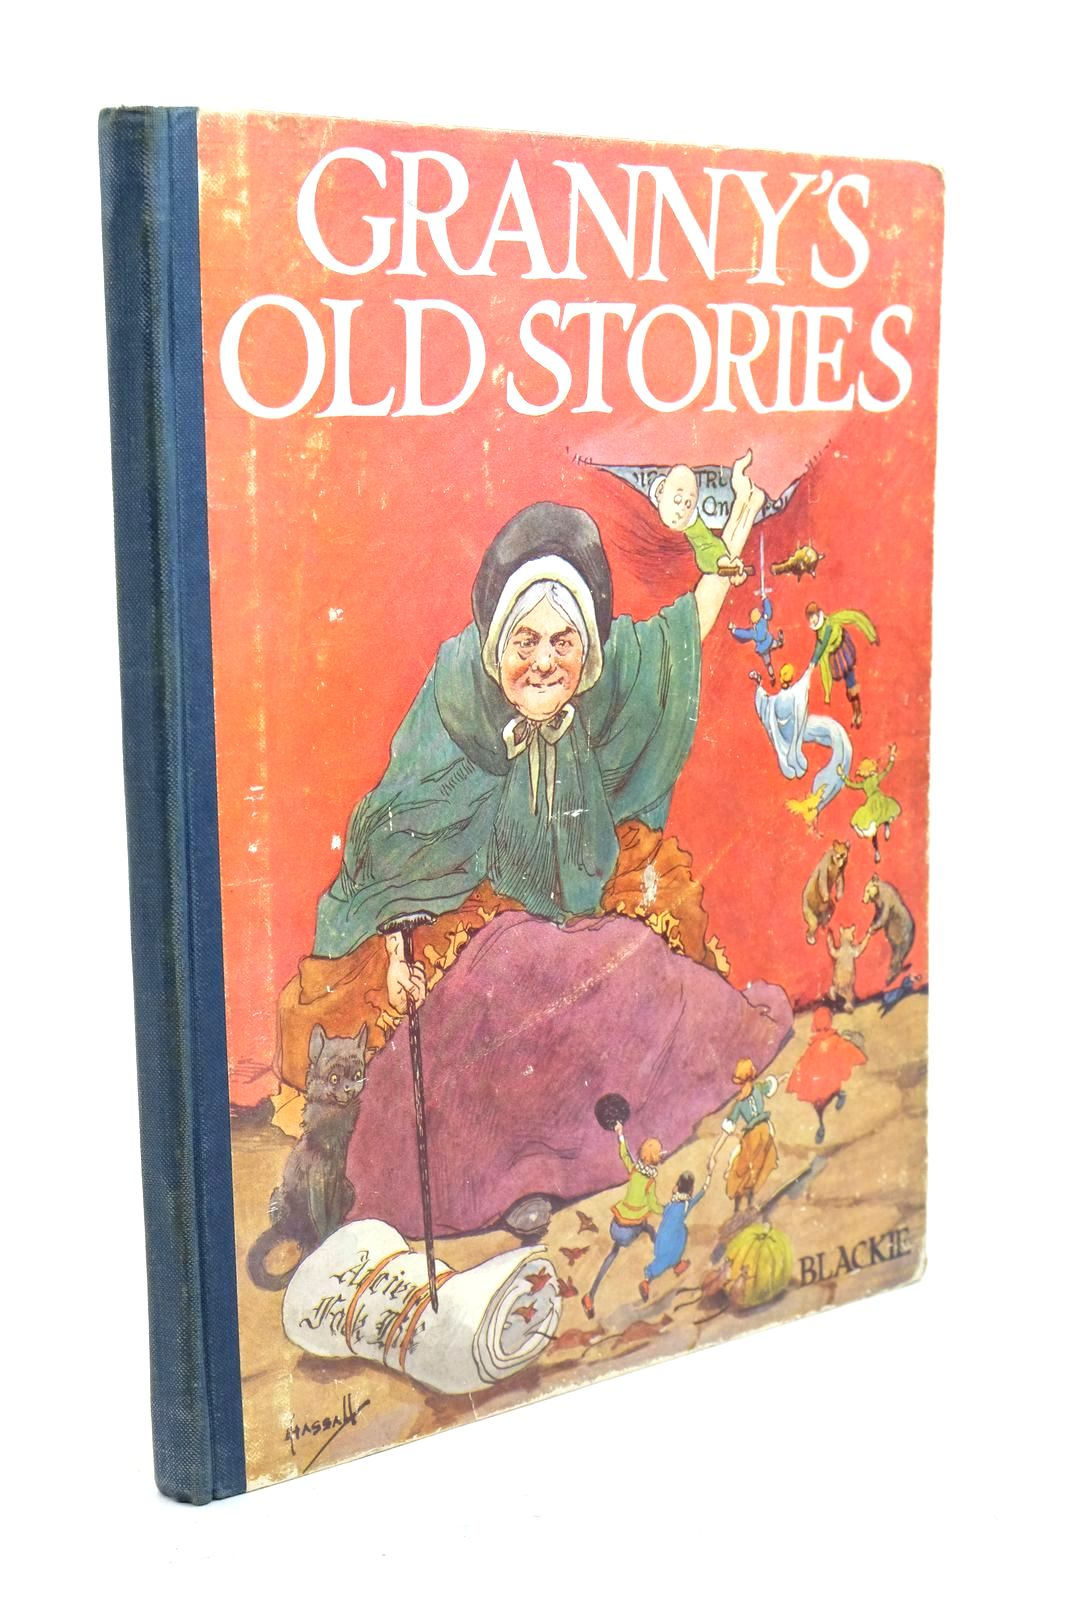 Photo of GRANNY'S OLD STORIES illustrated by Hassall, John published by Blackie & Son Ltd. (STOCK CODE: 1321143)  for sale by Stella & Rose's Books